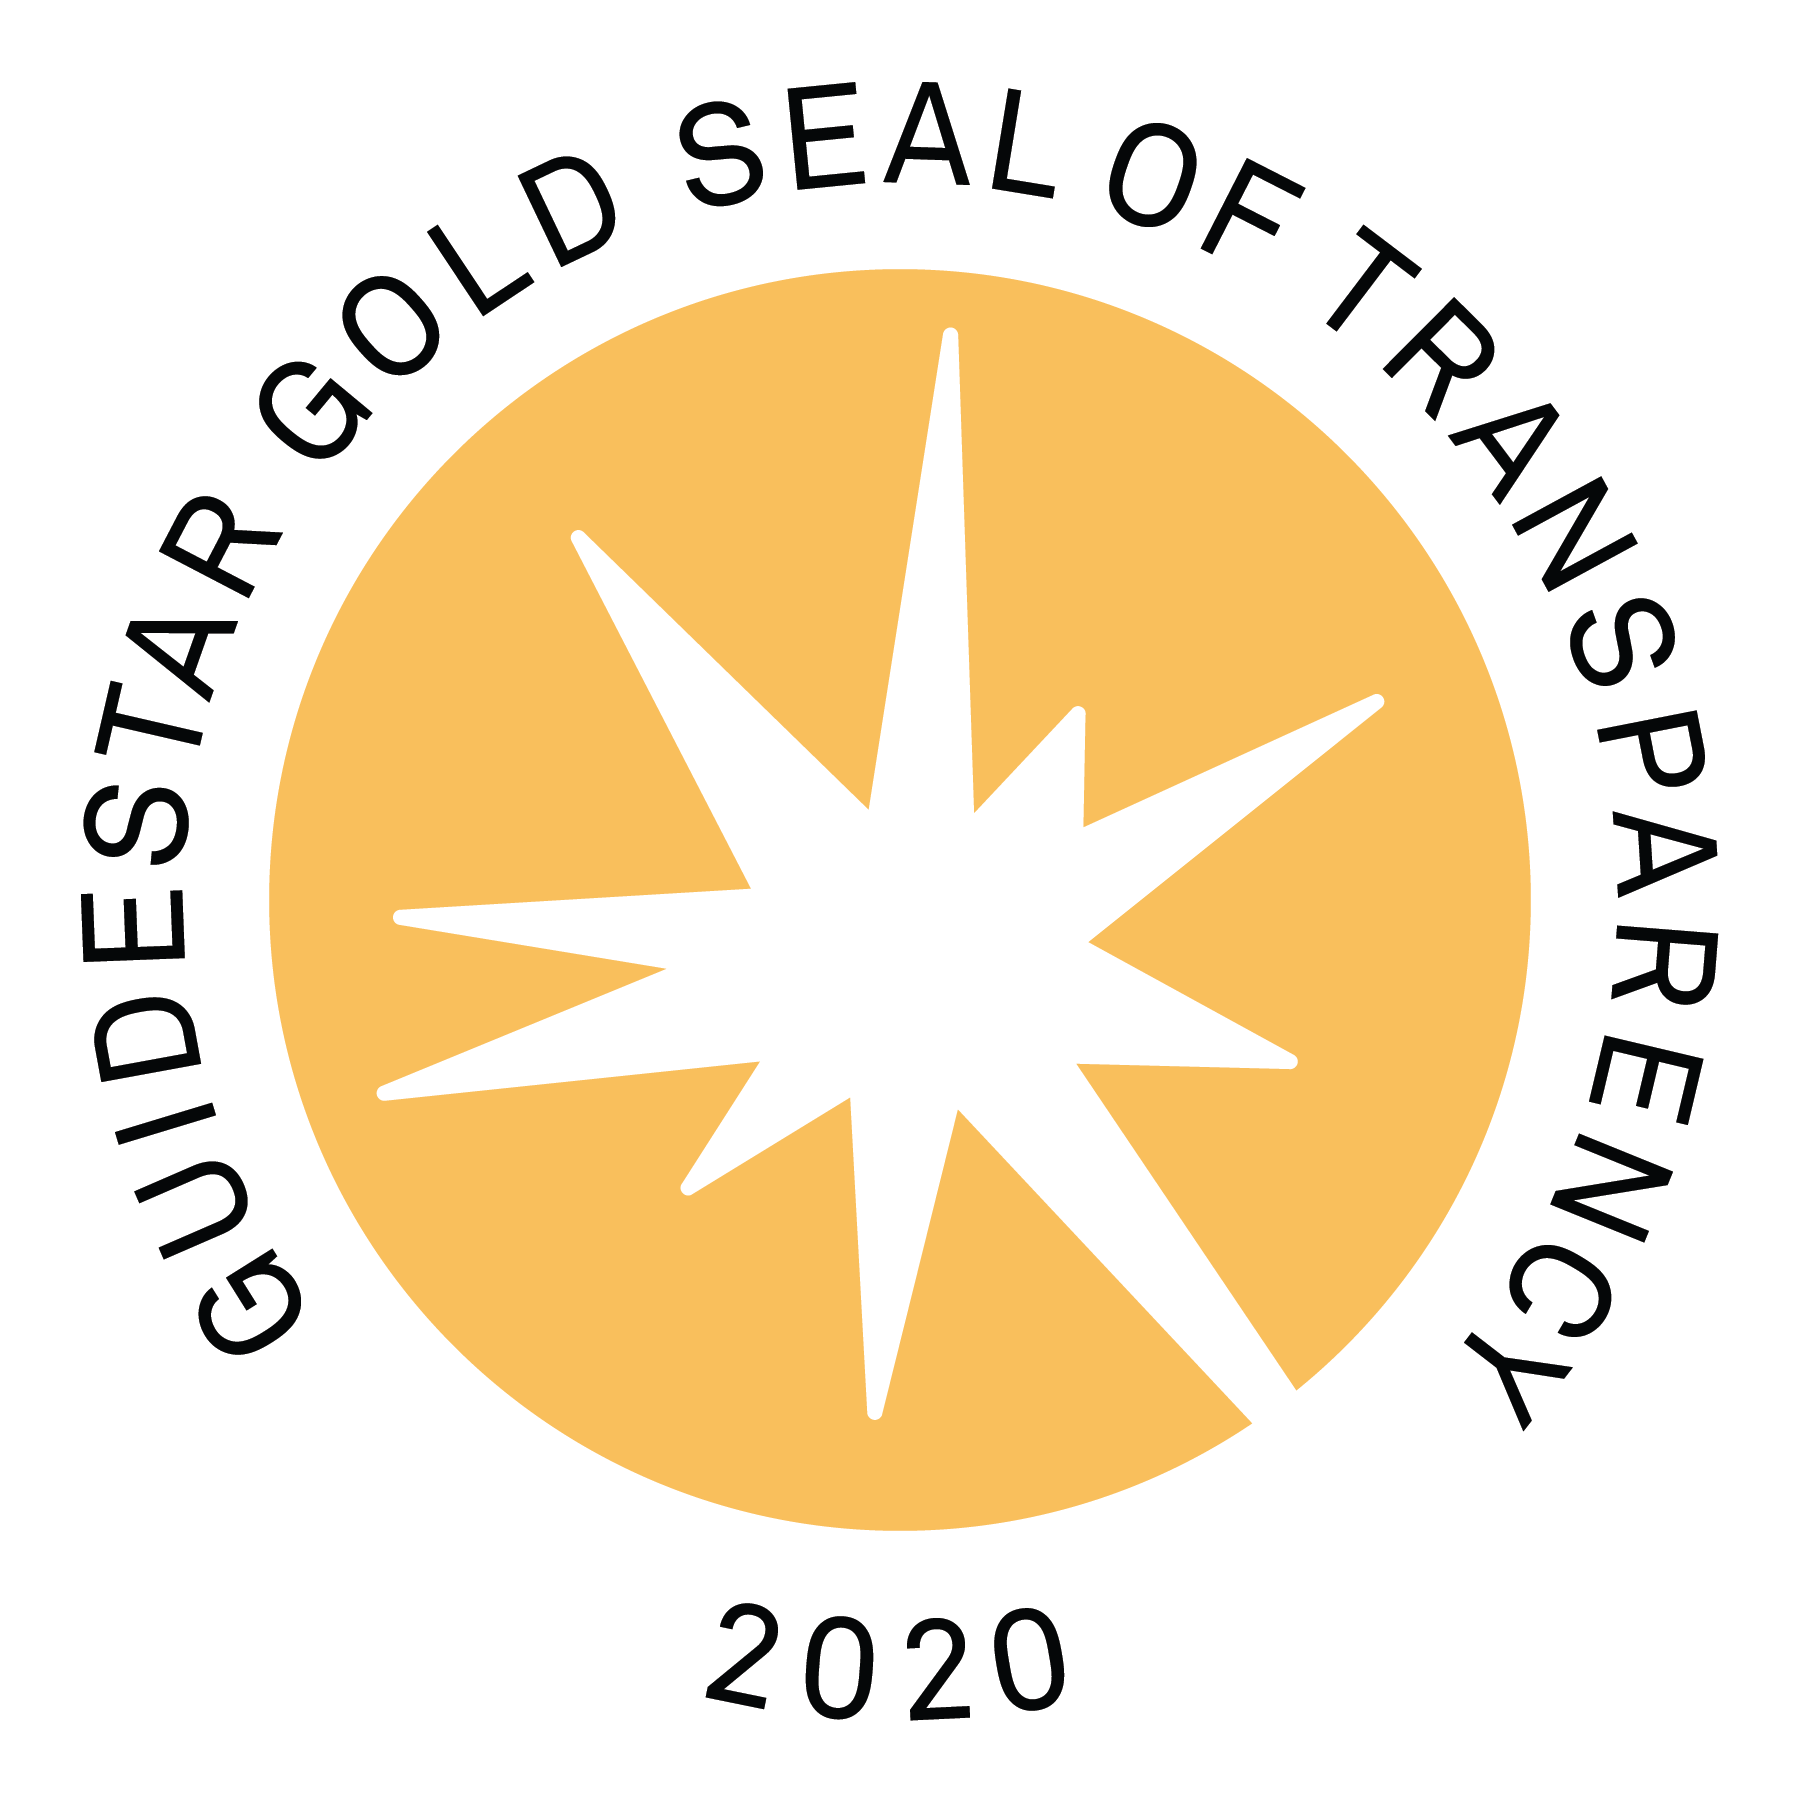 Career Path Services awarded the Gold Seal for Transparency 2020